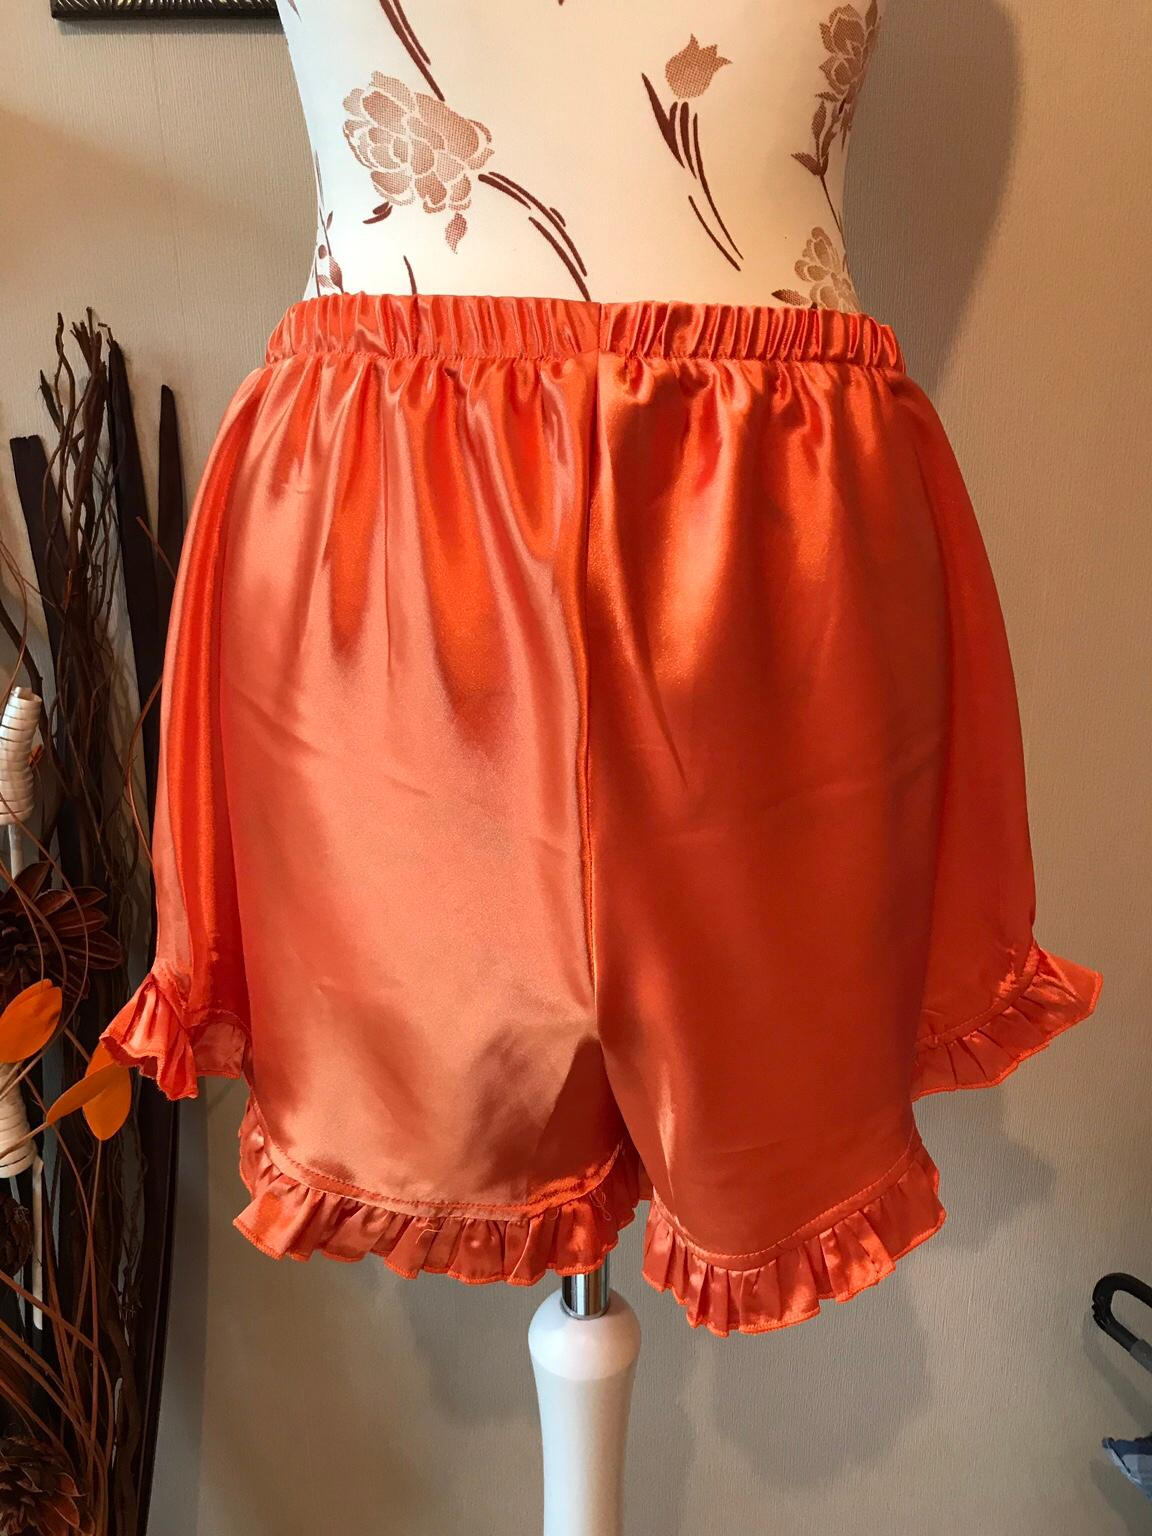 hot sale online bf833 1d4df NEU Nachthemd damen orange Schlafanzug seide